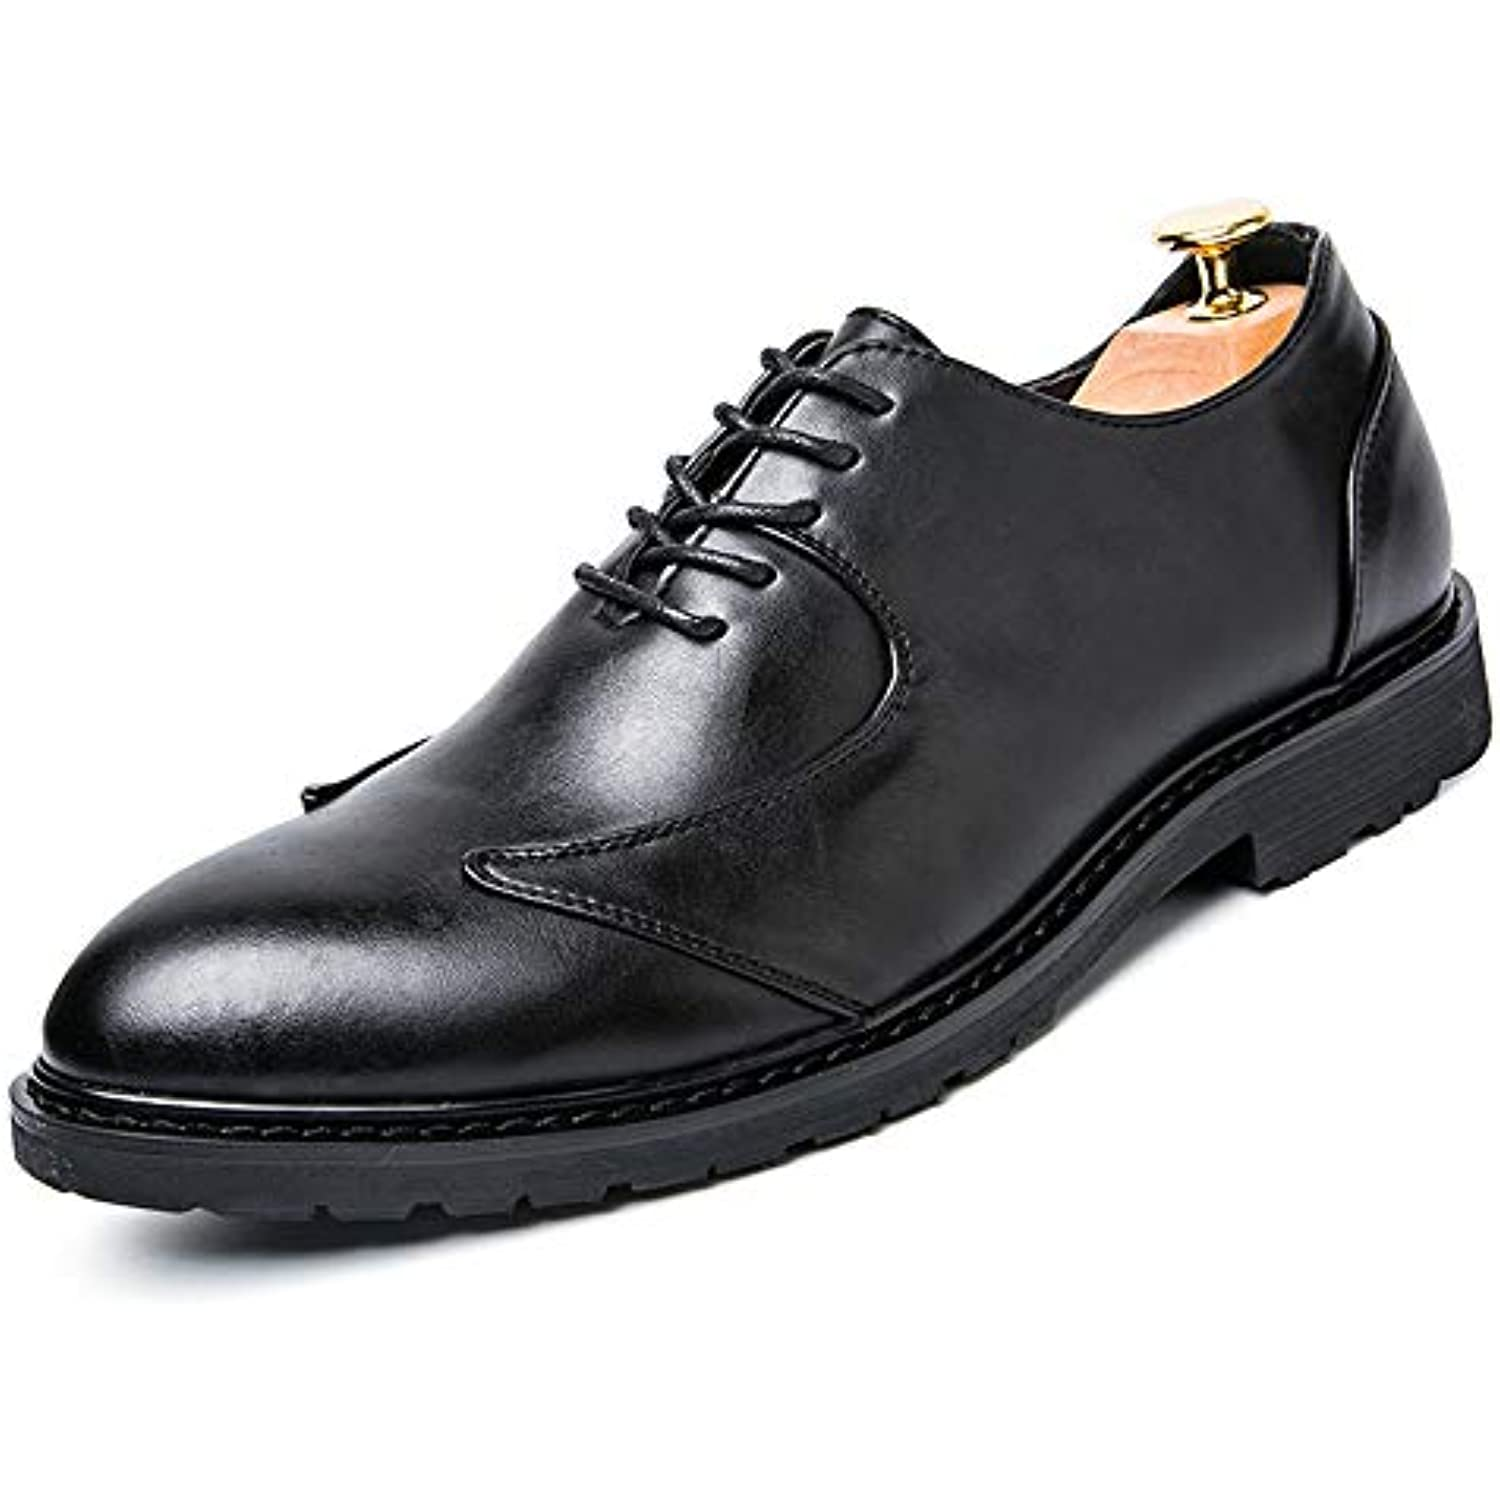 Ying xinguang Homme Oxford Business Casual Occasionnel Doux Respirant Retro Low Tip Retro Respirant Style bri - B07JZG32DD - 3978ca